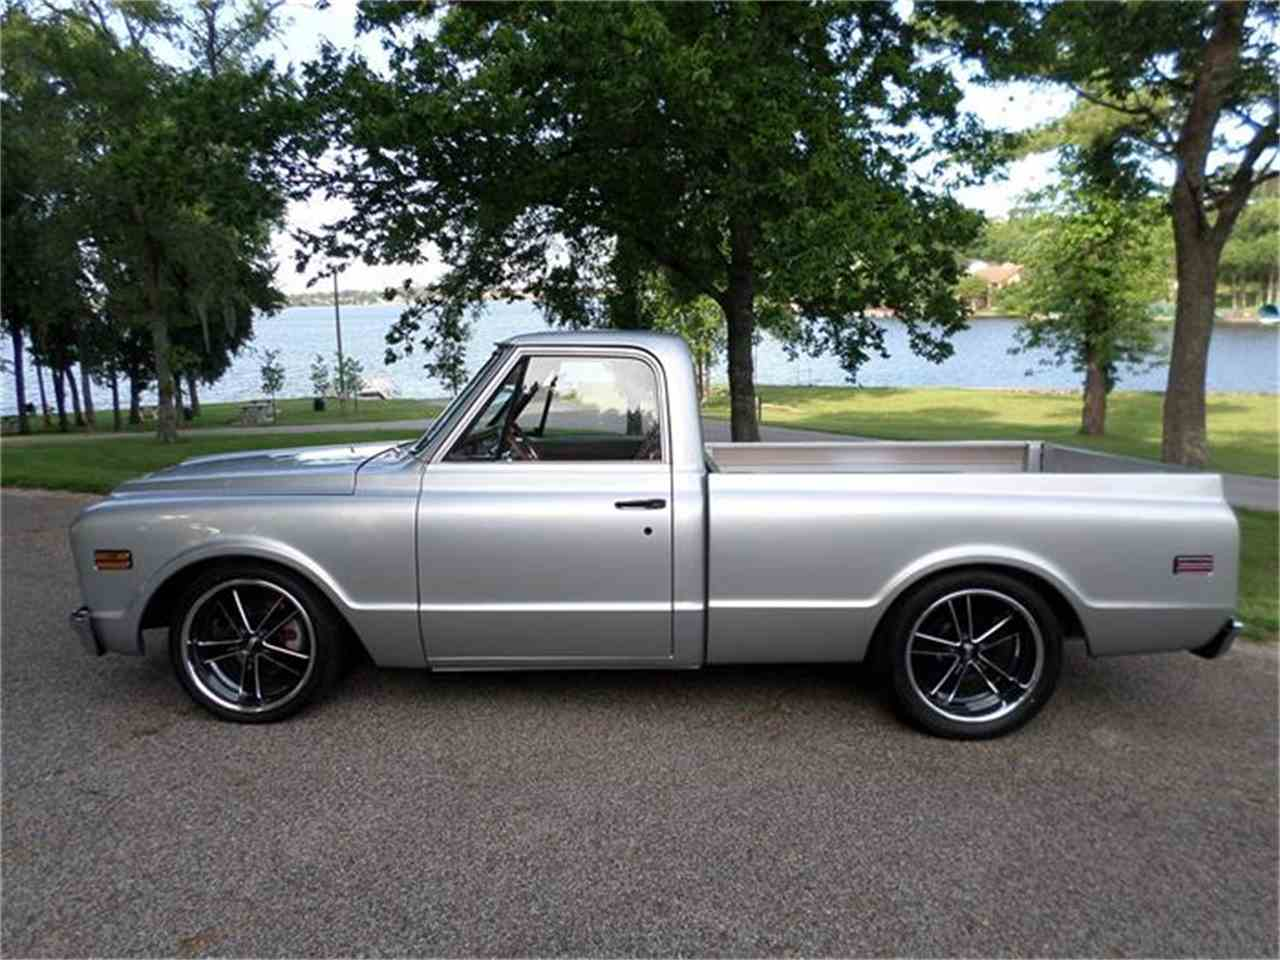 All Chevy 1969 chevy c10 for sale : 1969 Chevrolet C/K 10 for Sale | ClassicCars.com | CC-840310